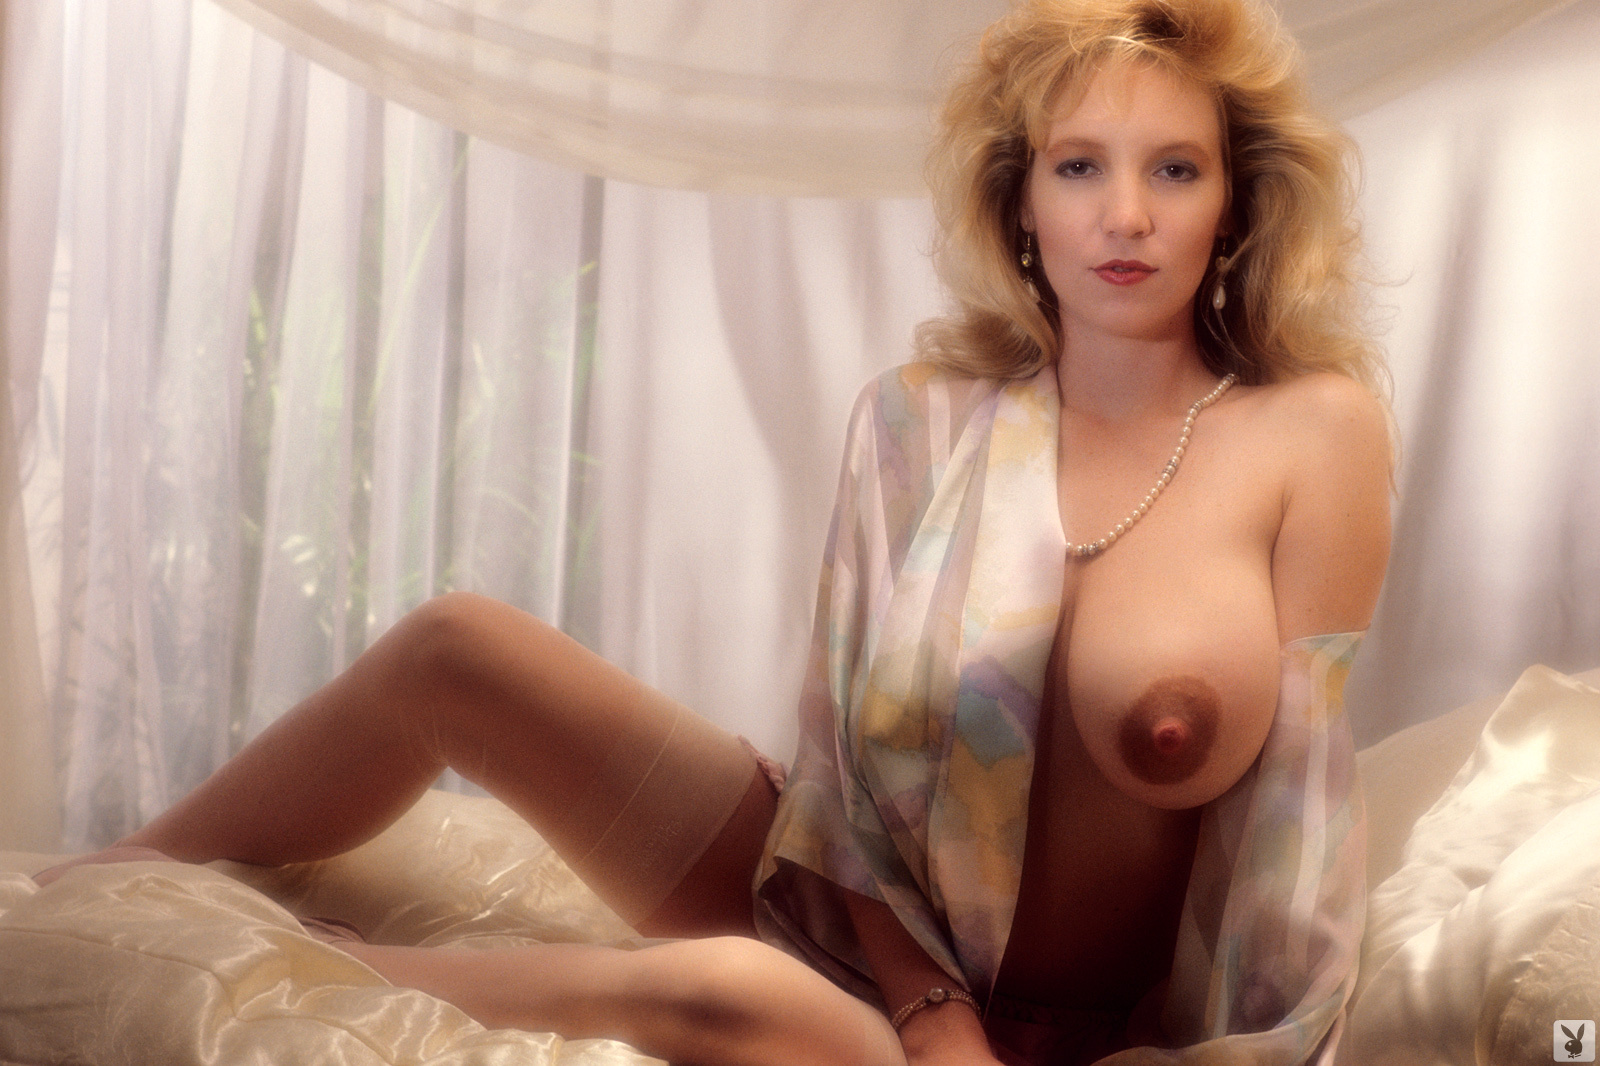 Adrienne naked shelly photo 555